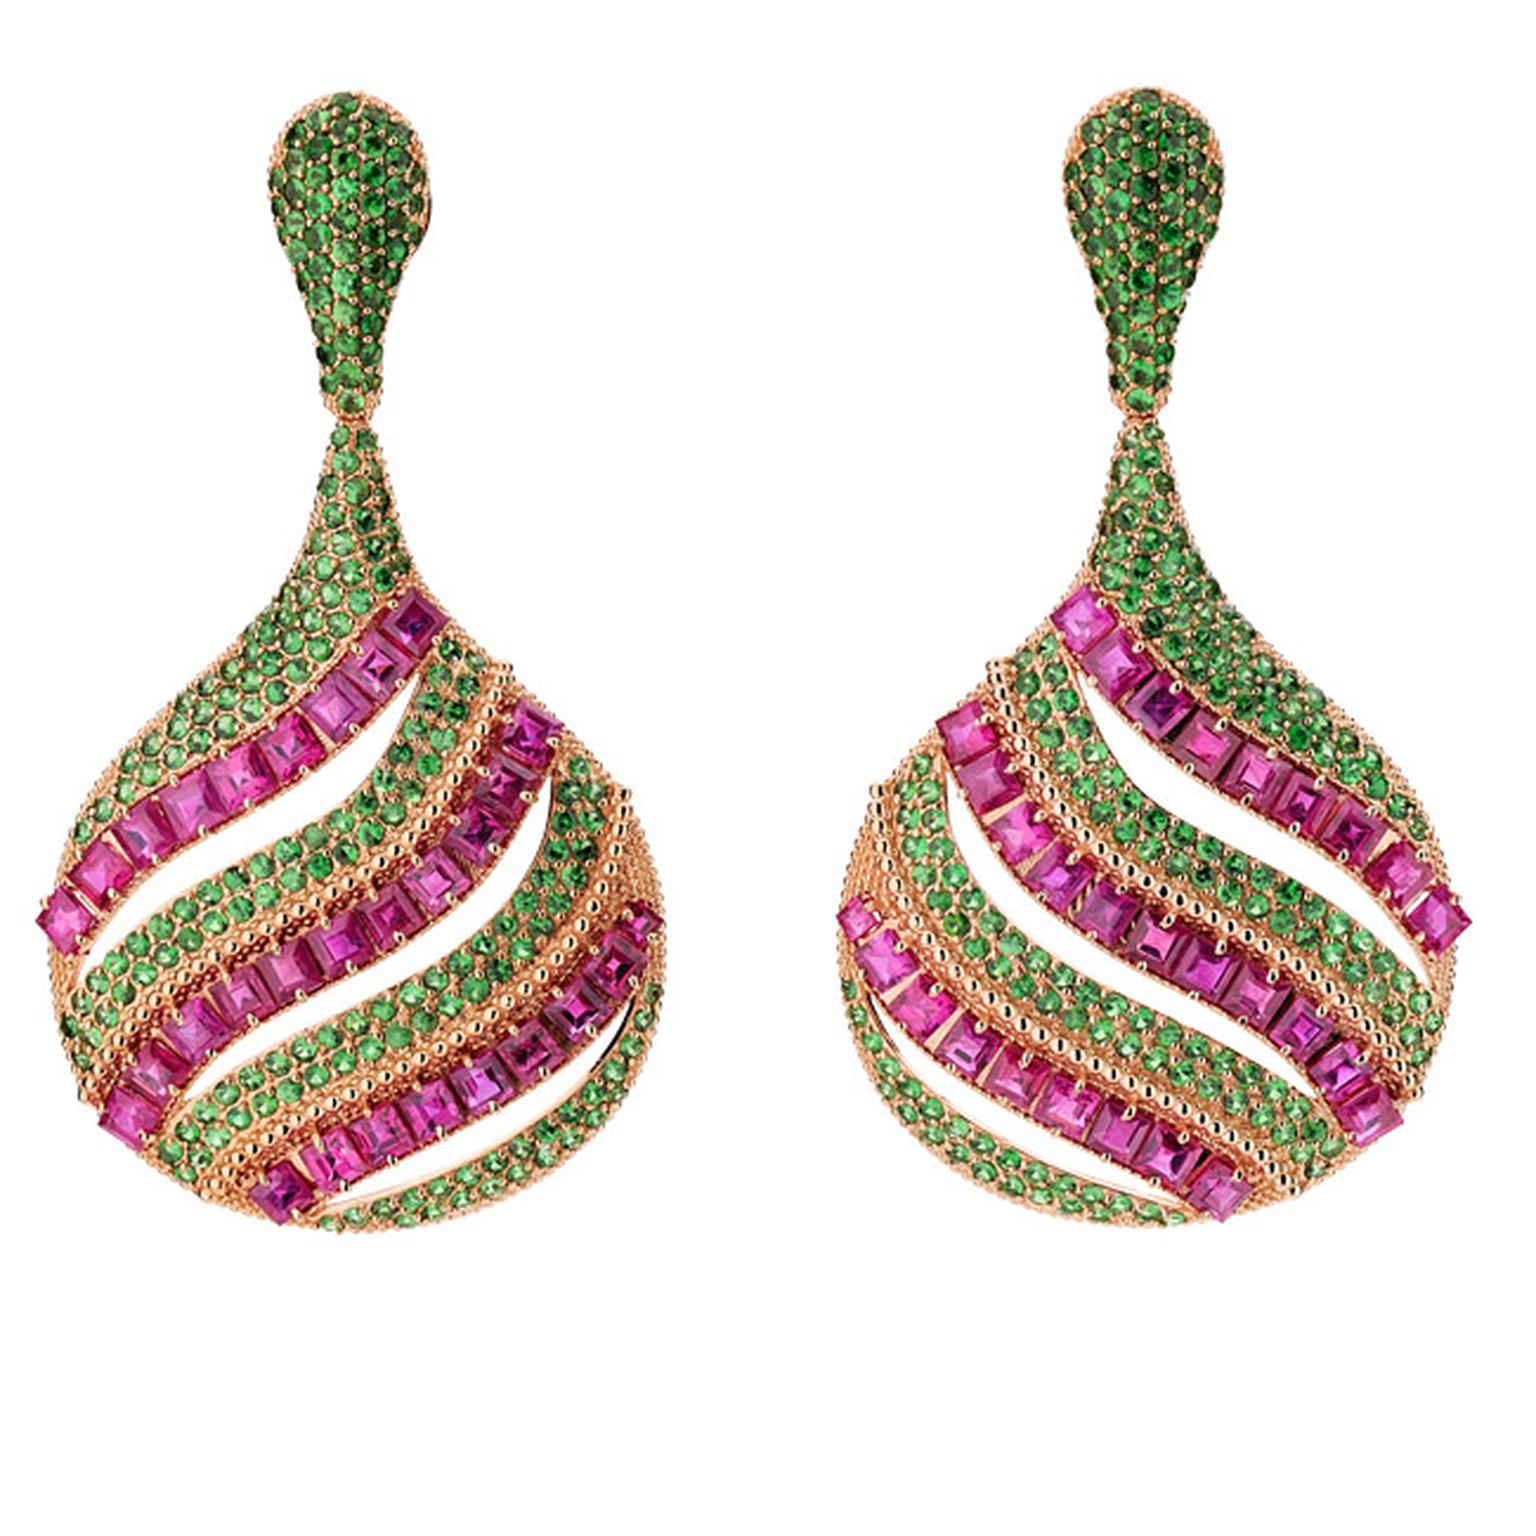 Carla-Amorim-St-Basil-Earrings-Main